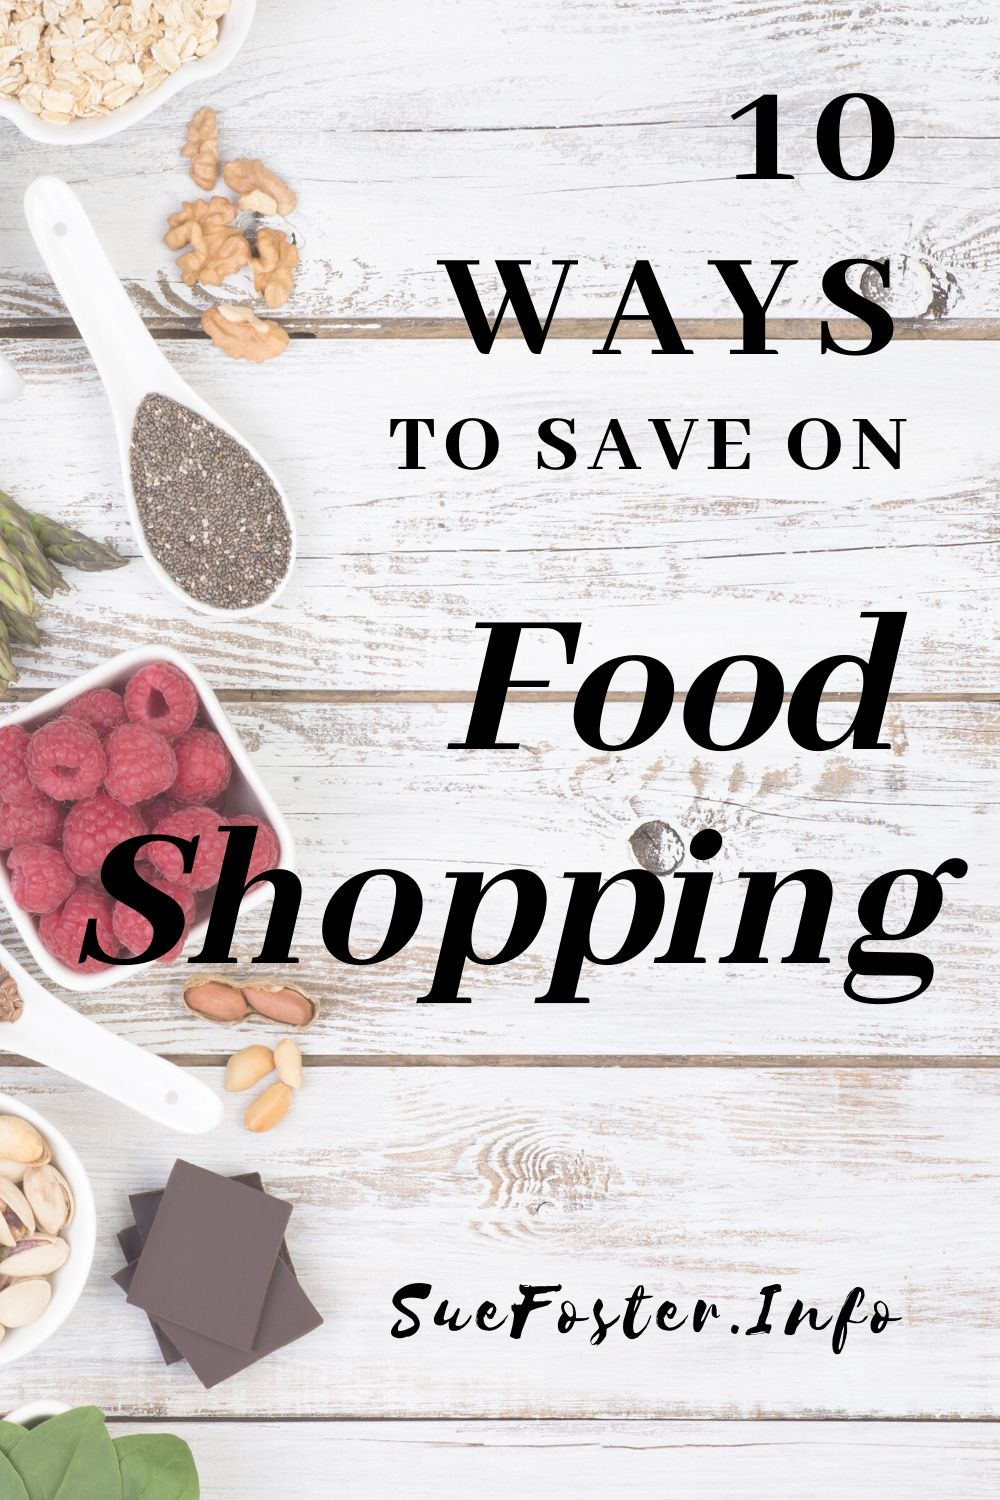 10 ways to save on the weekly shop.